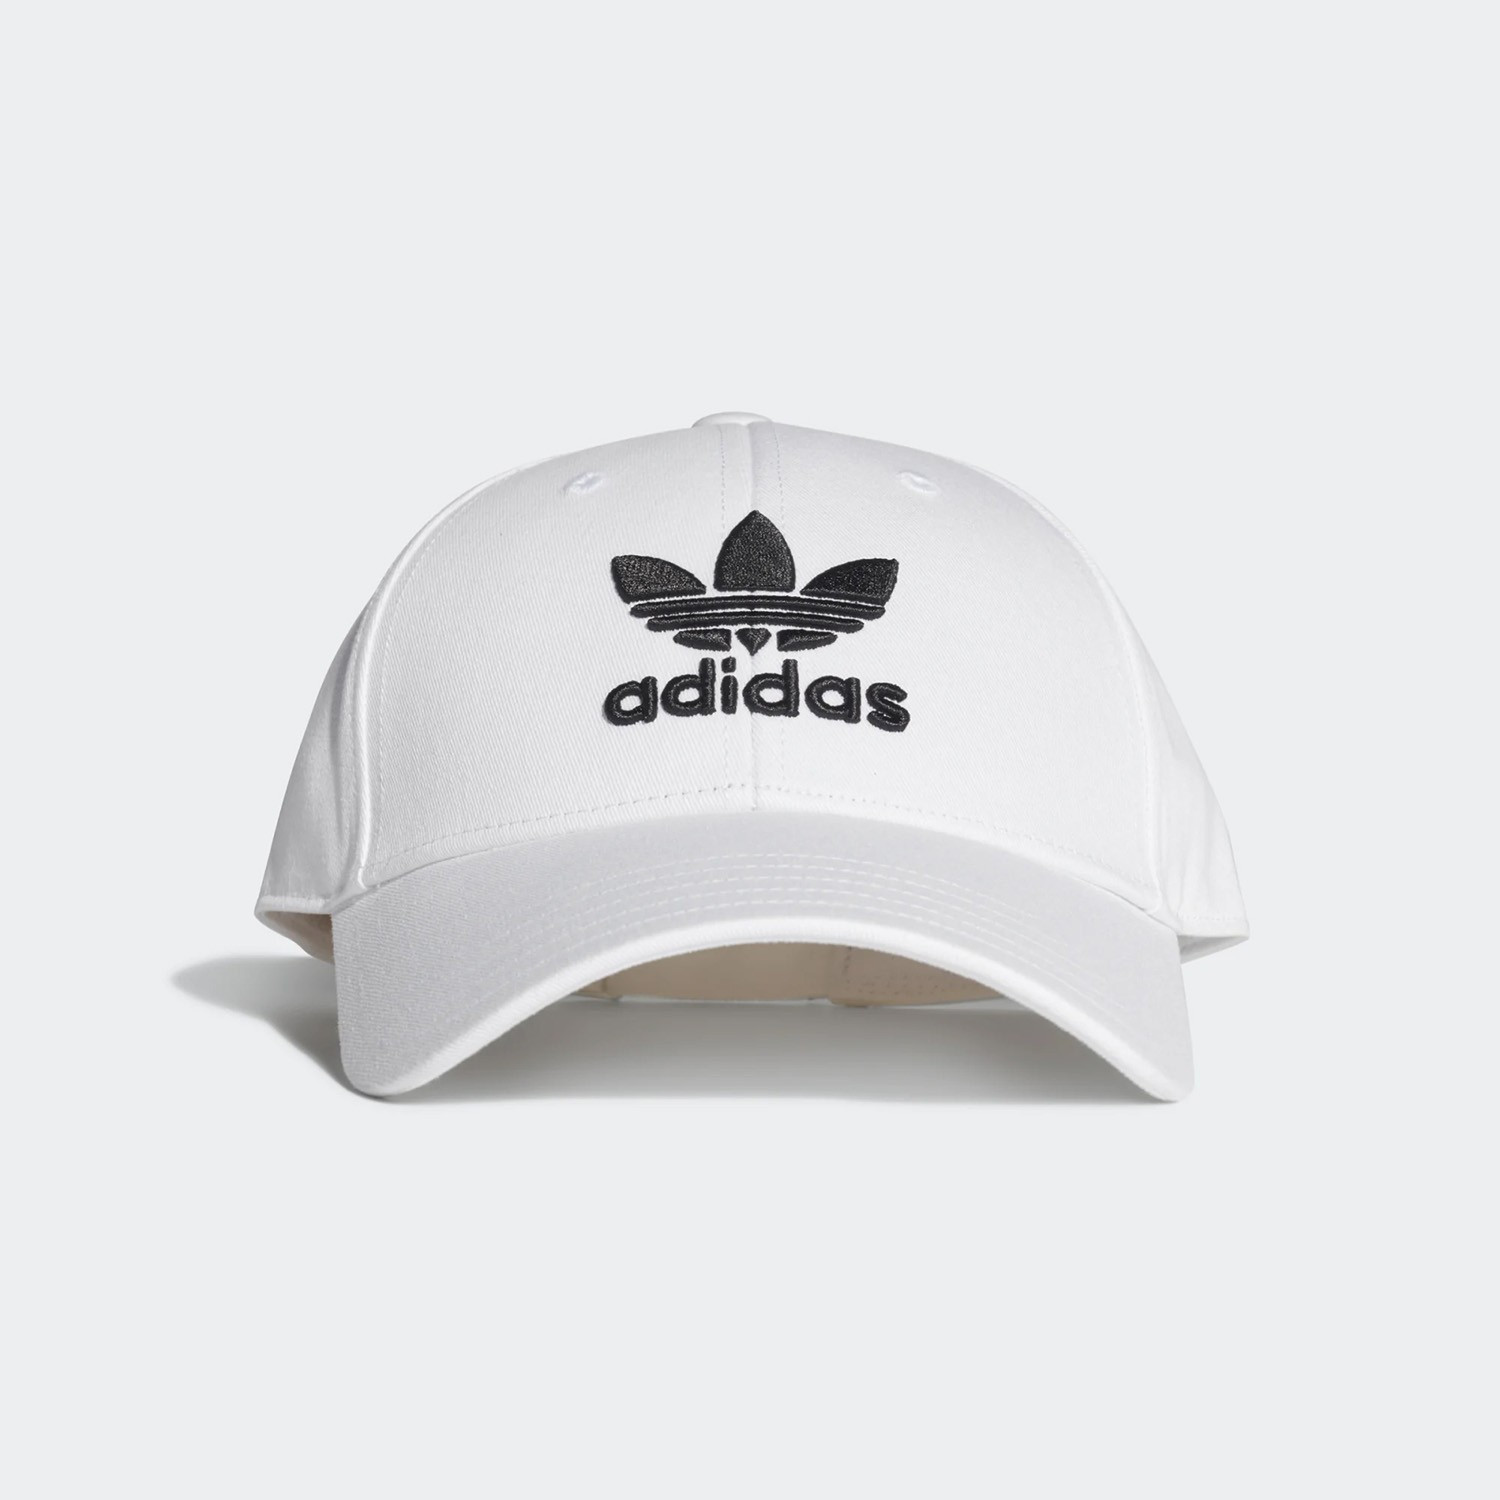 adidas Originals Trefoil Baseball Καπέλο (9000033546_1540)